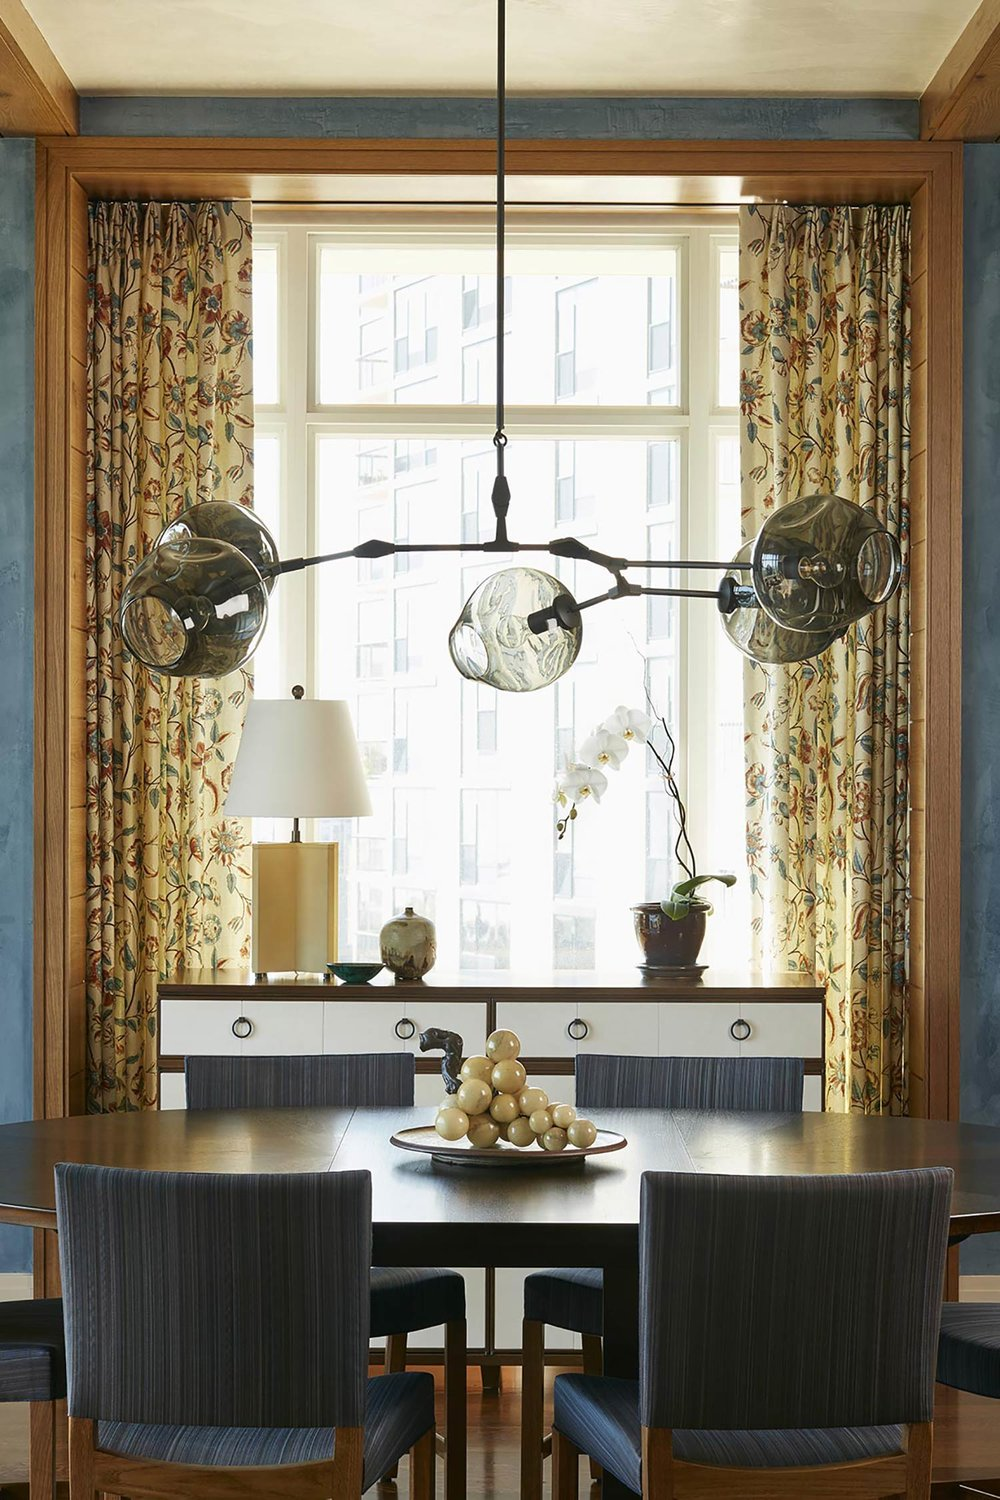 window treatments  Interior Design: Bruce Fox, Inc.